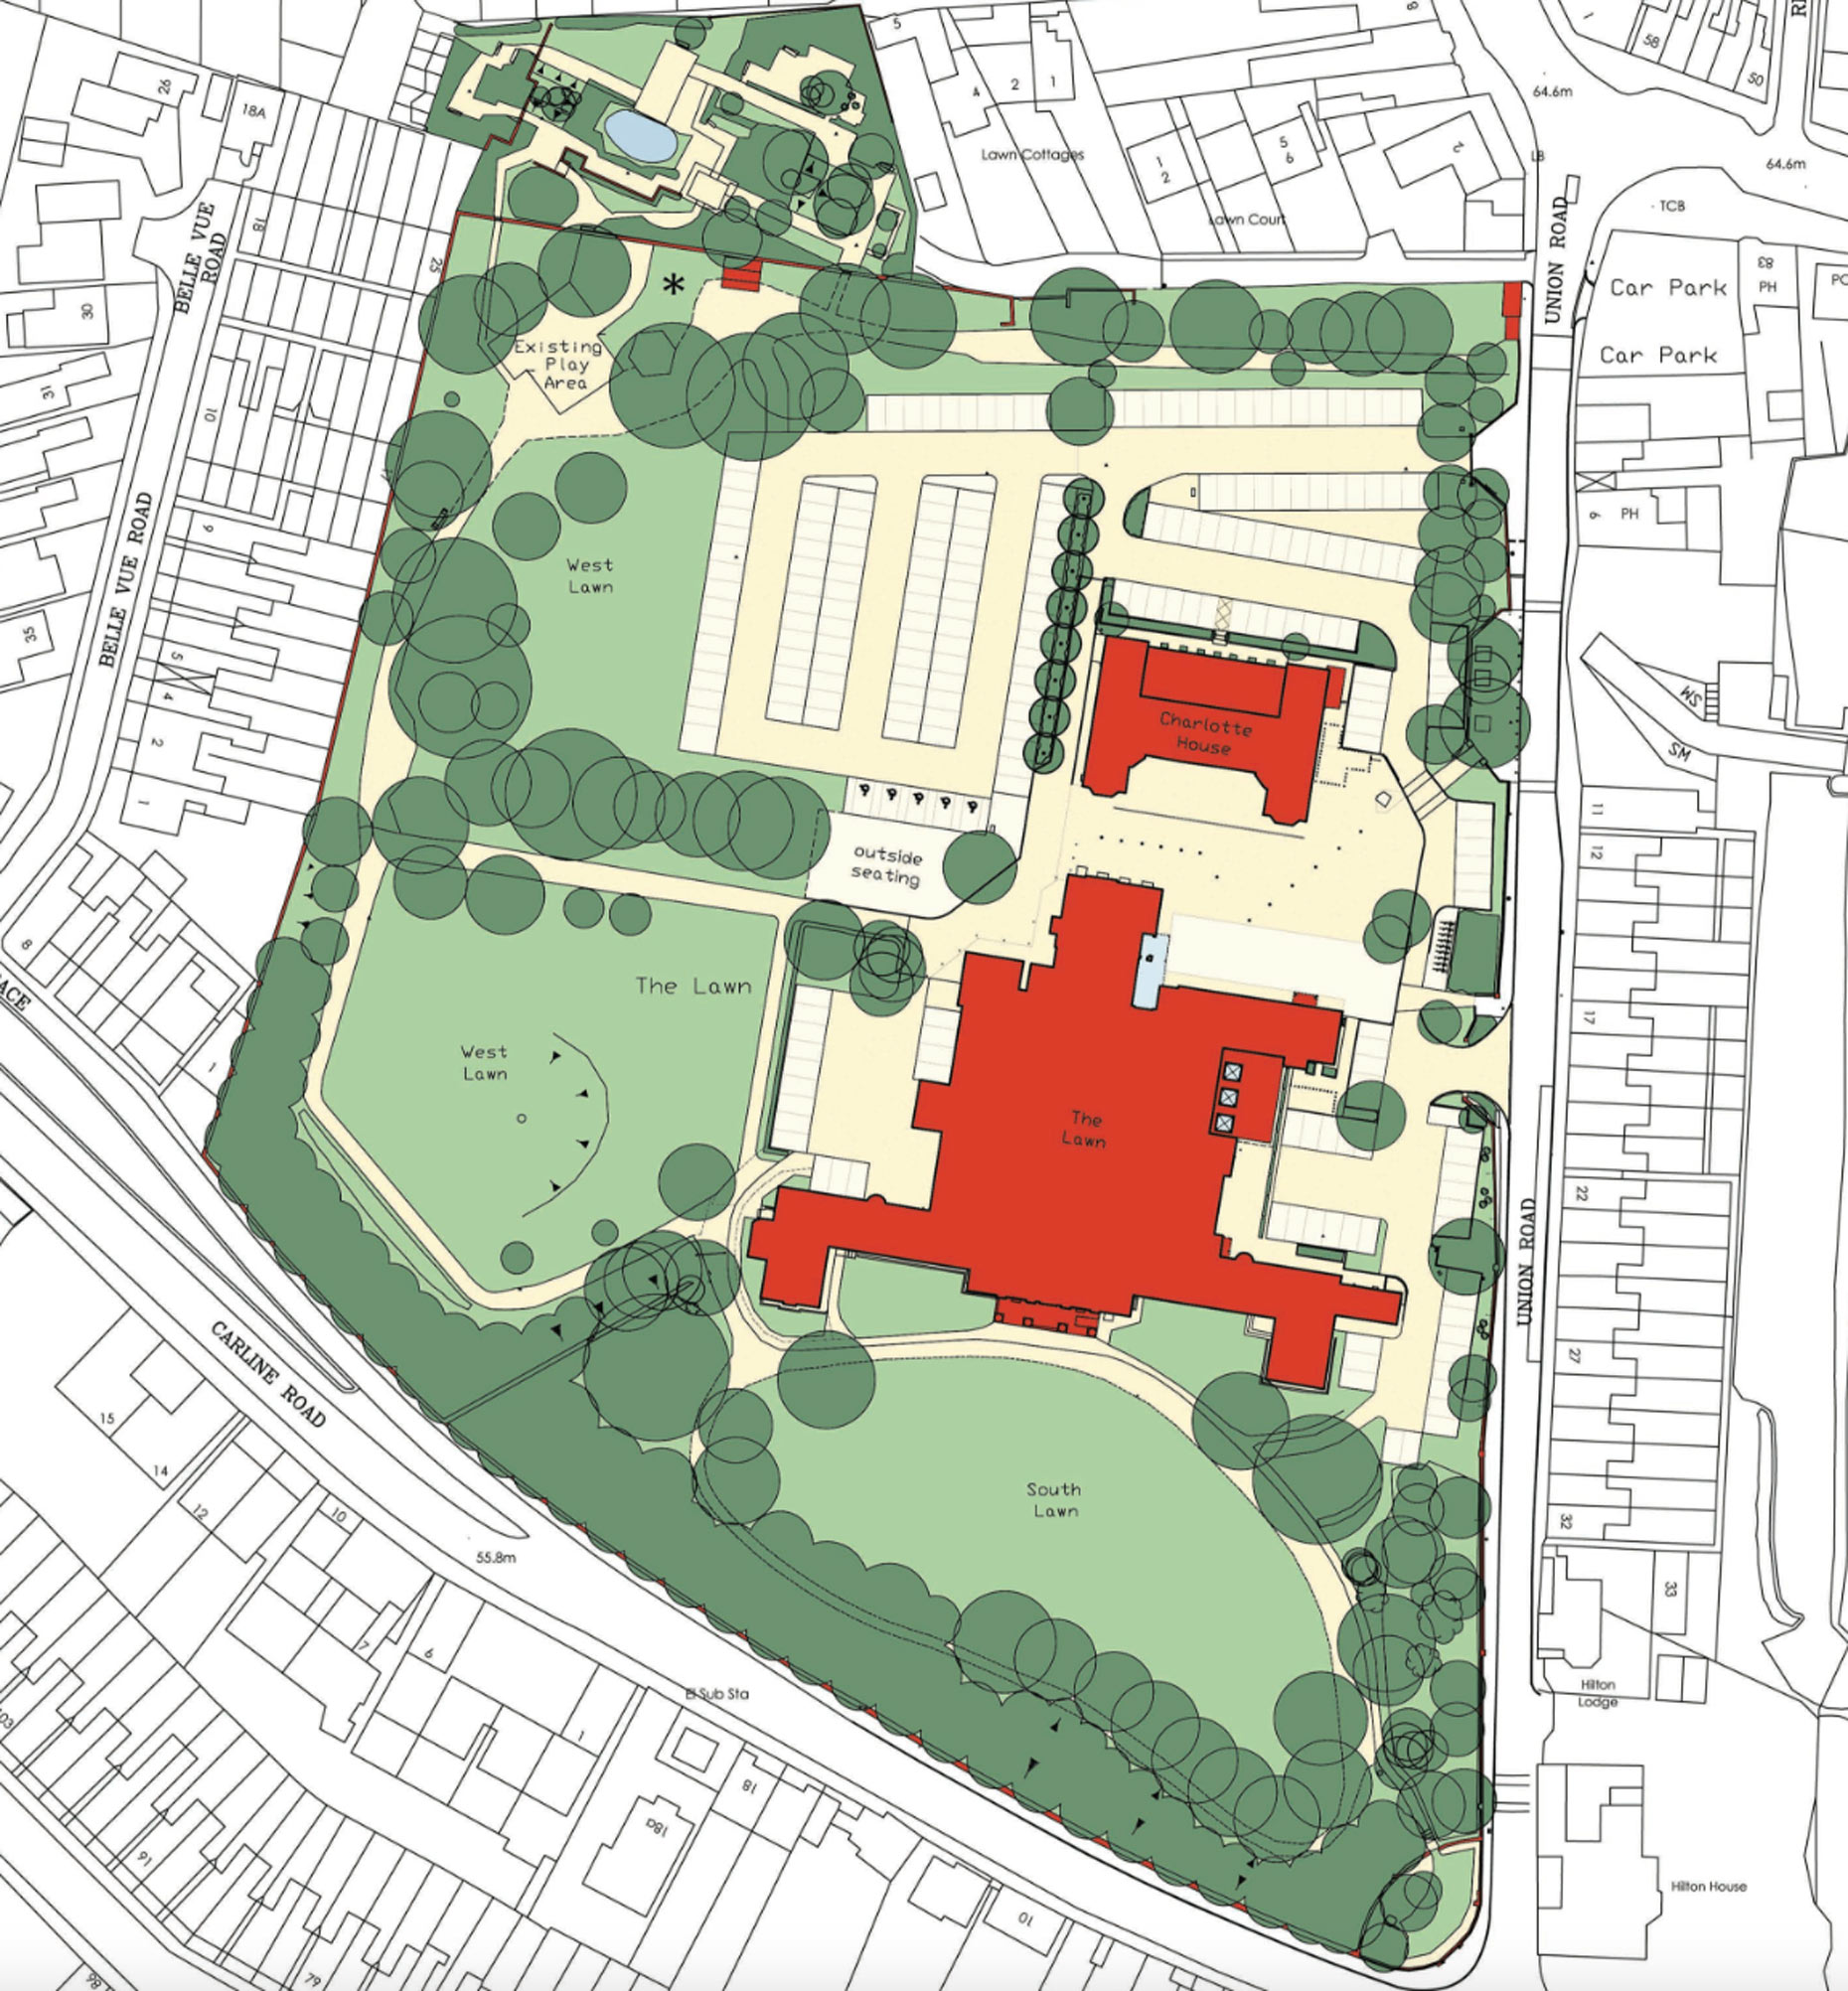 The proposed site plan, ahead of a finalised planning application.